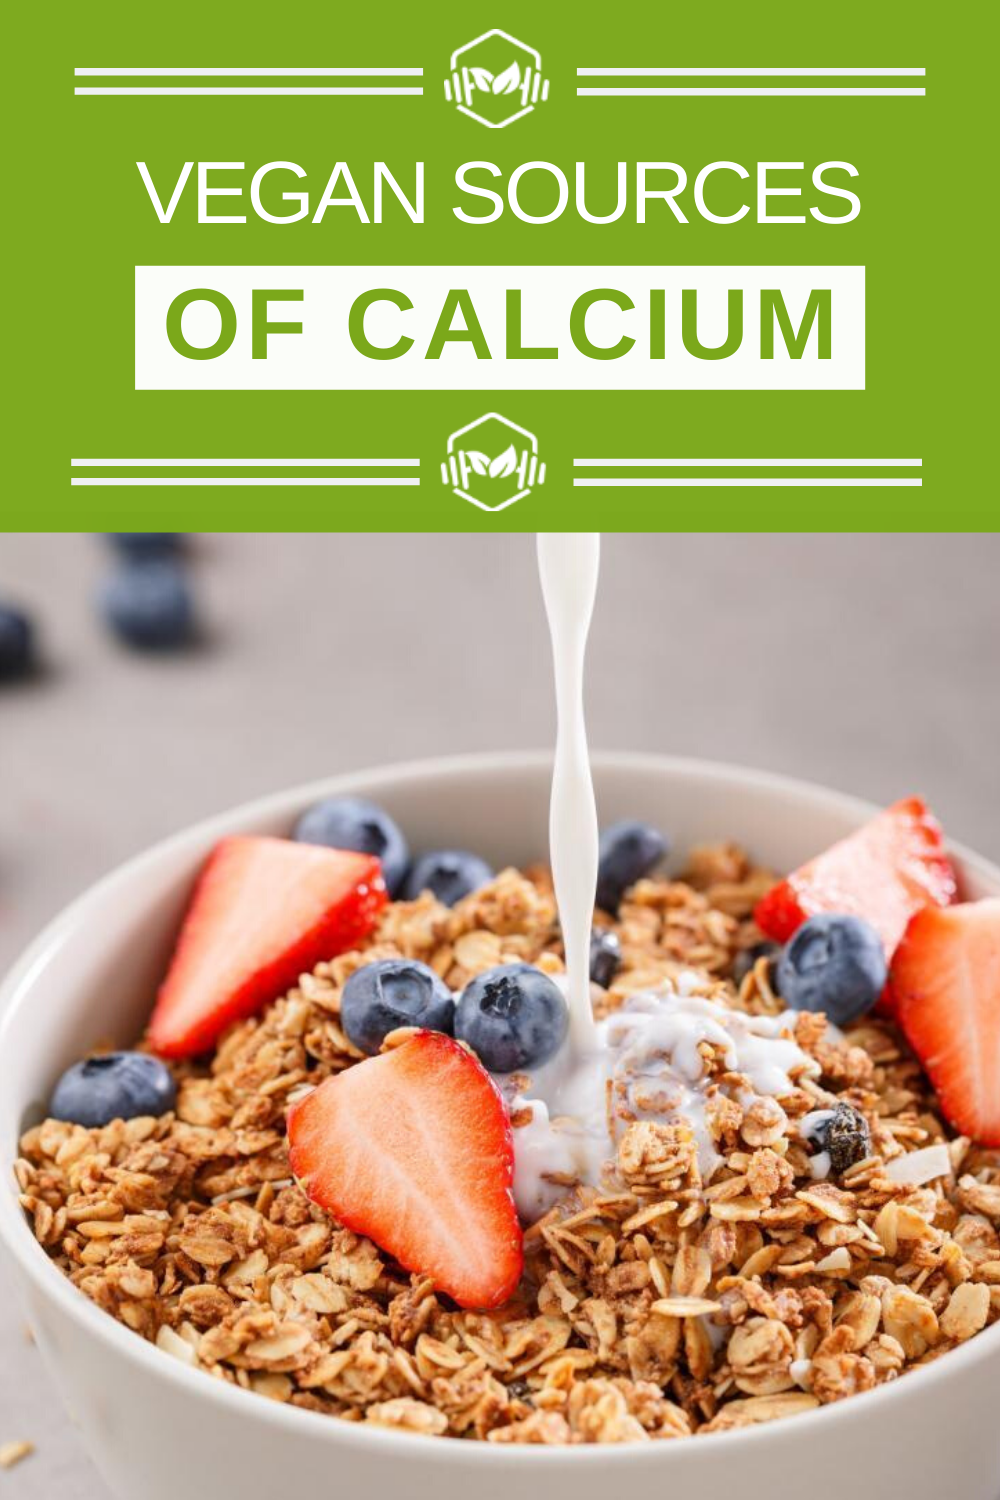 Best Vegan Sources Of Calcium 10 Foods That You Need to